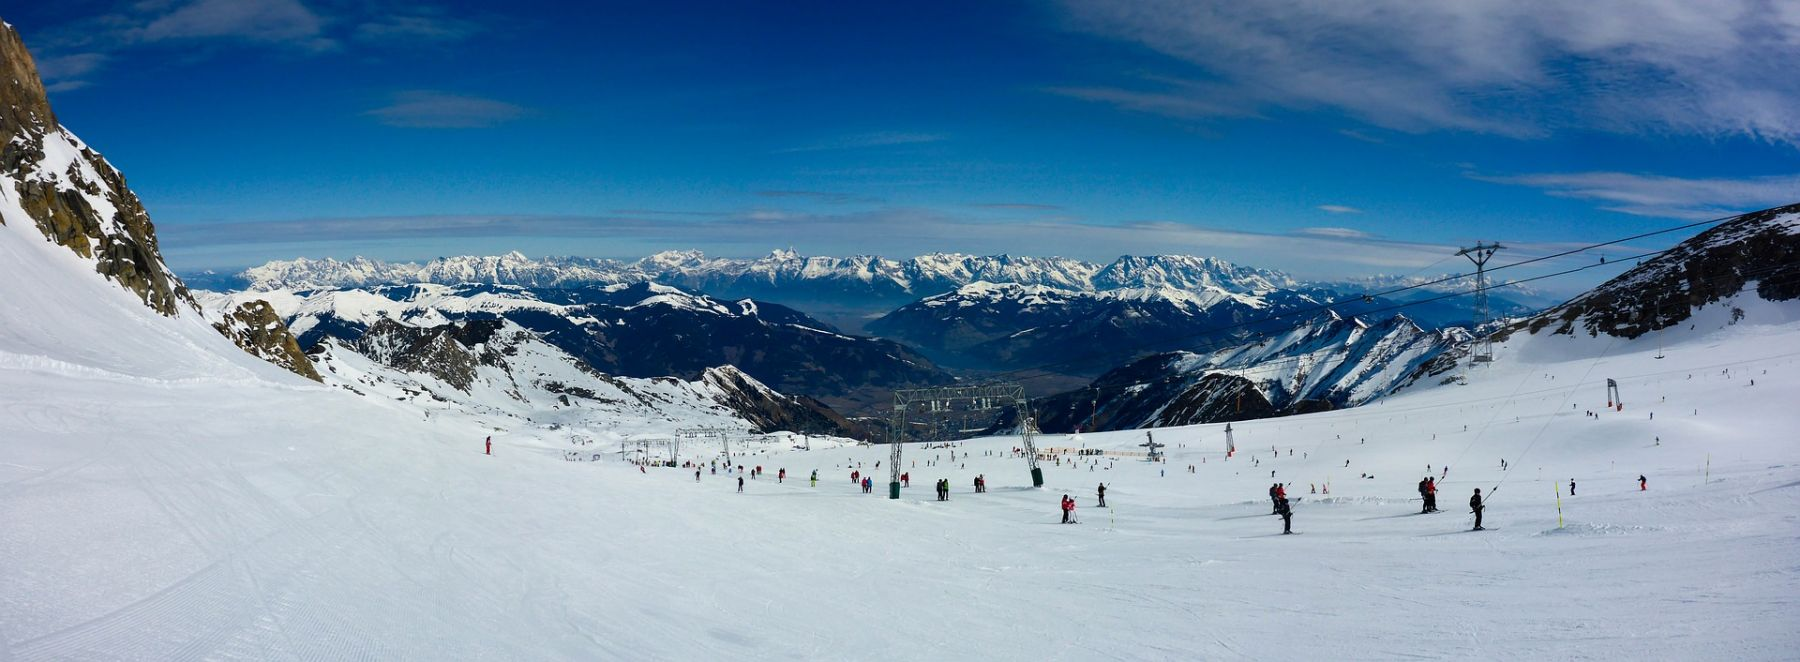 skiing-in-northern-italy